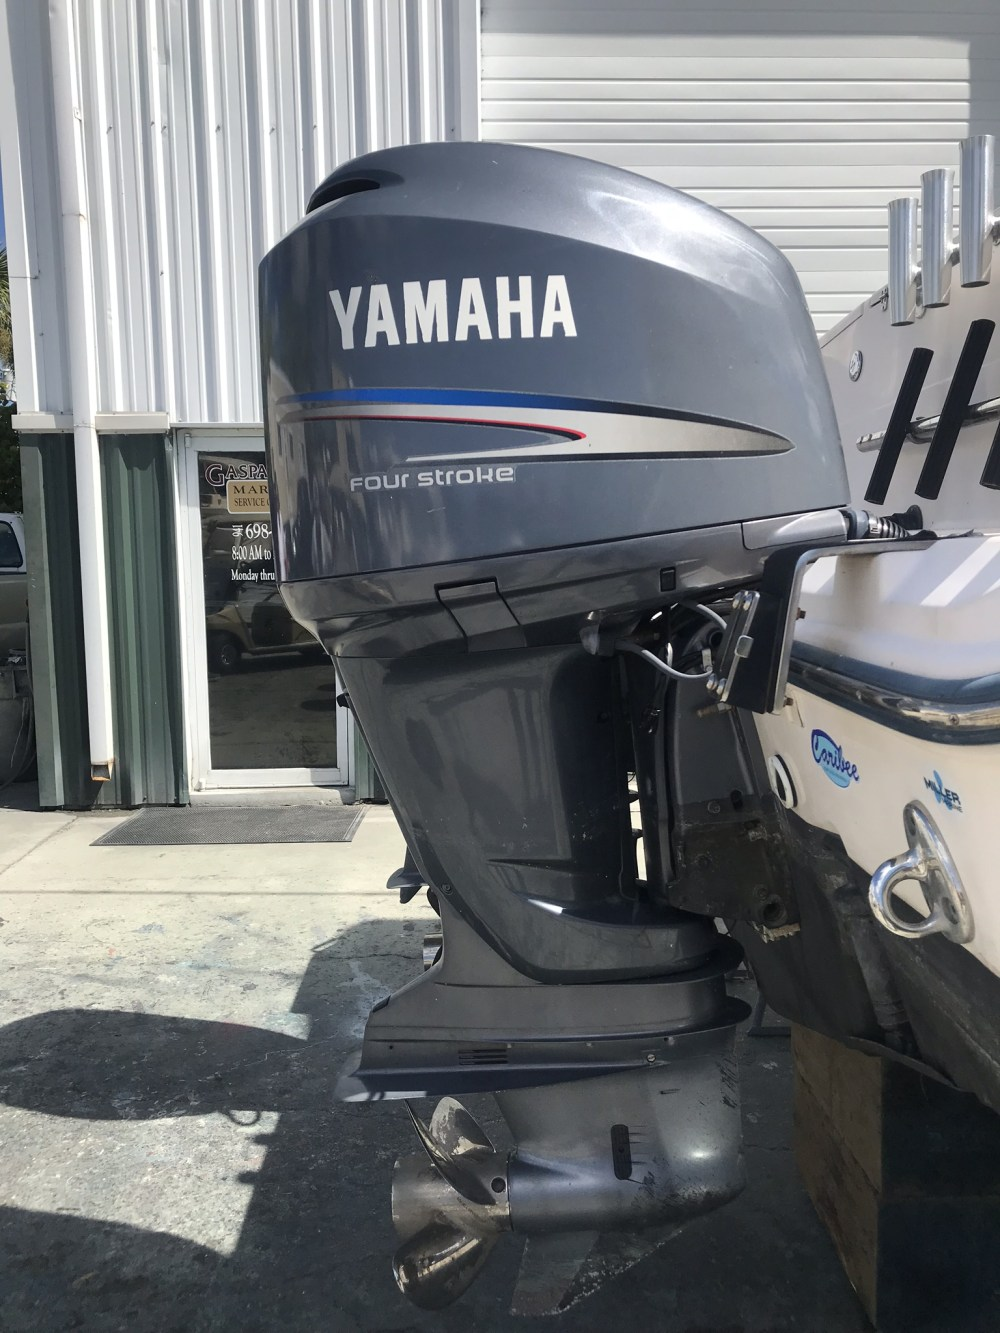 medium resolution of 2 sets of controls boat has a tower all must go cables wiring harness s gauges props etc 16500 00 obo message text or call 941 650 0677